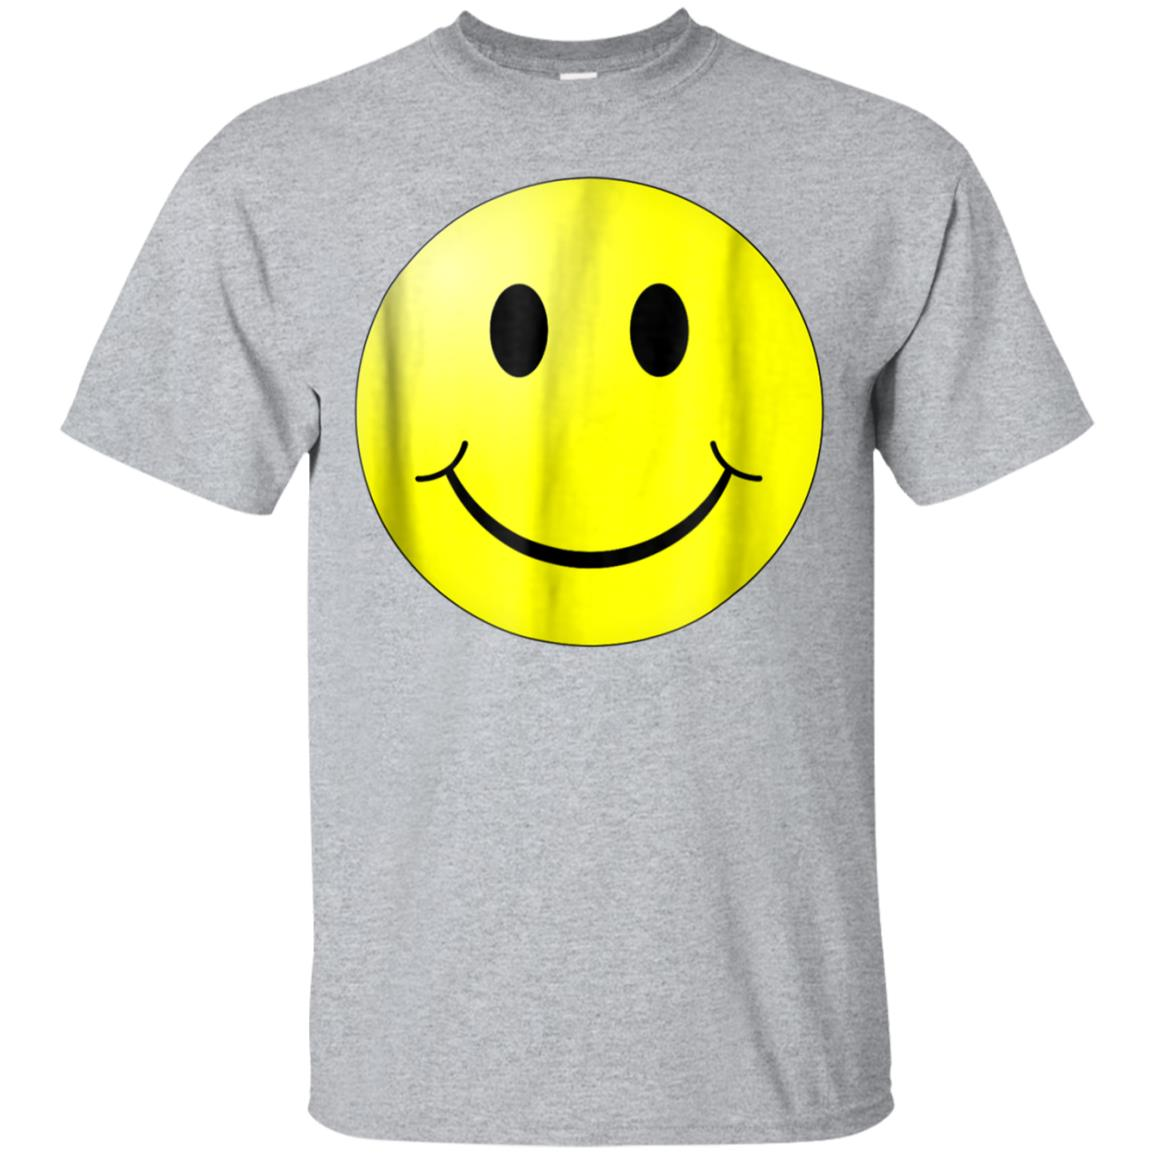 Smile and Be Happy Smiley Face T-shirt 99promocode